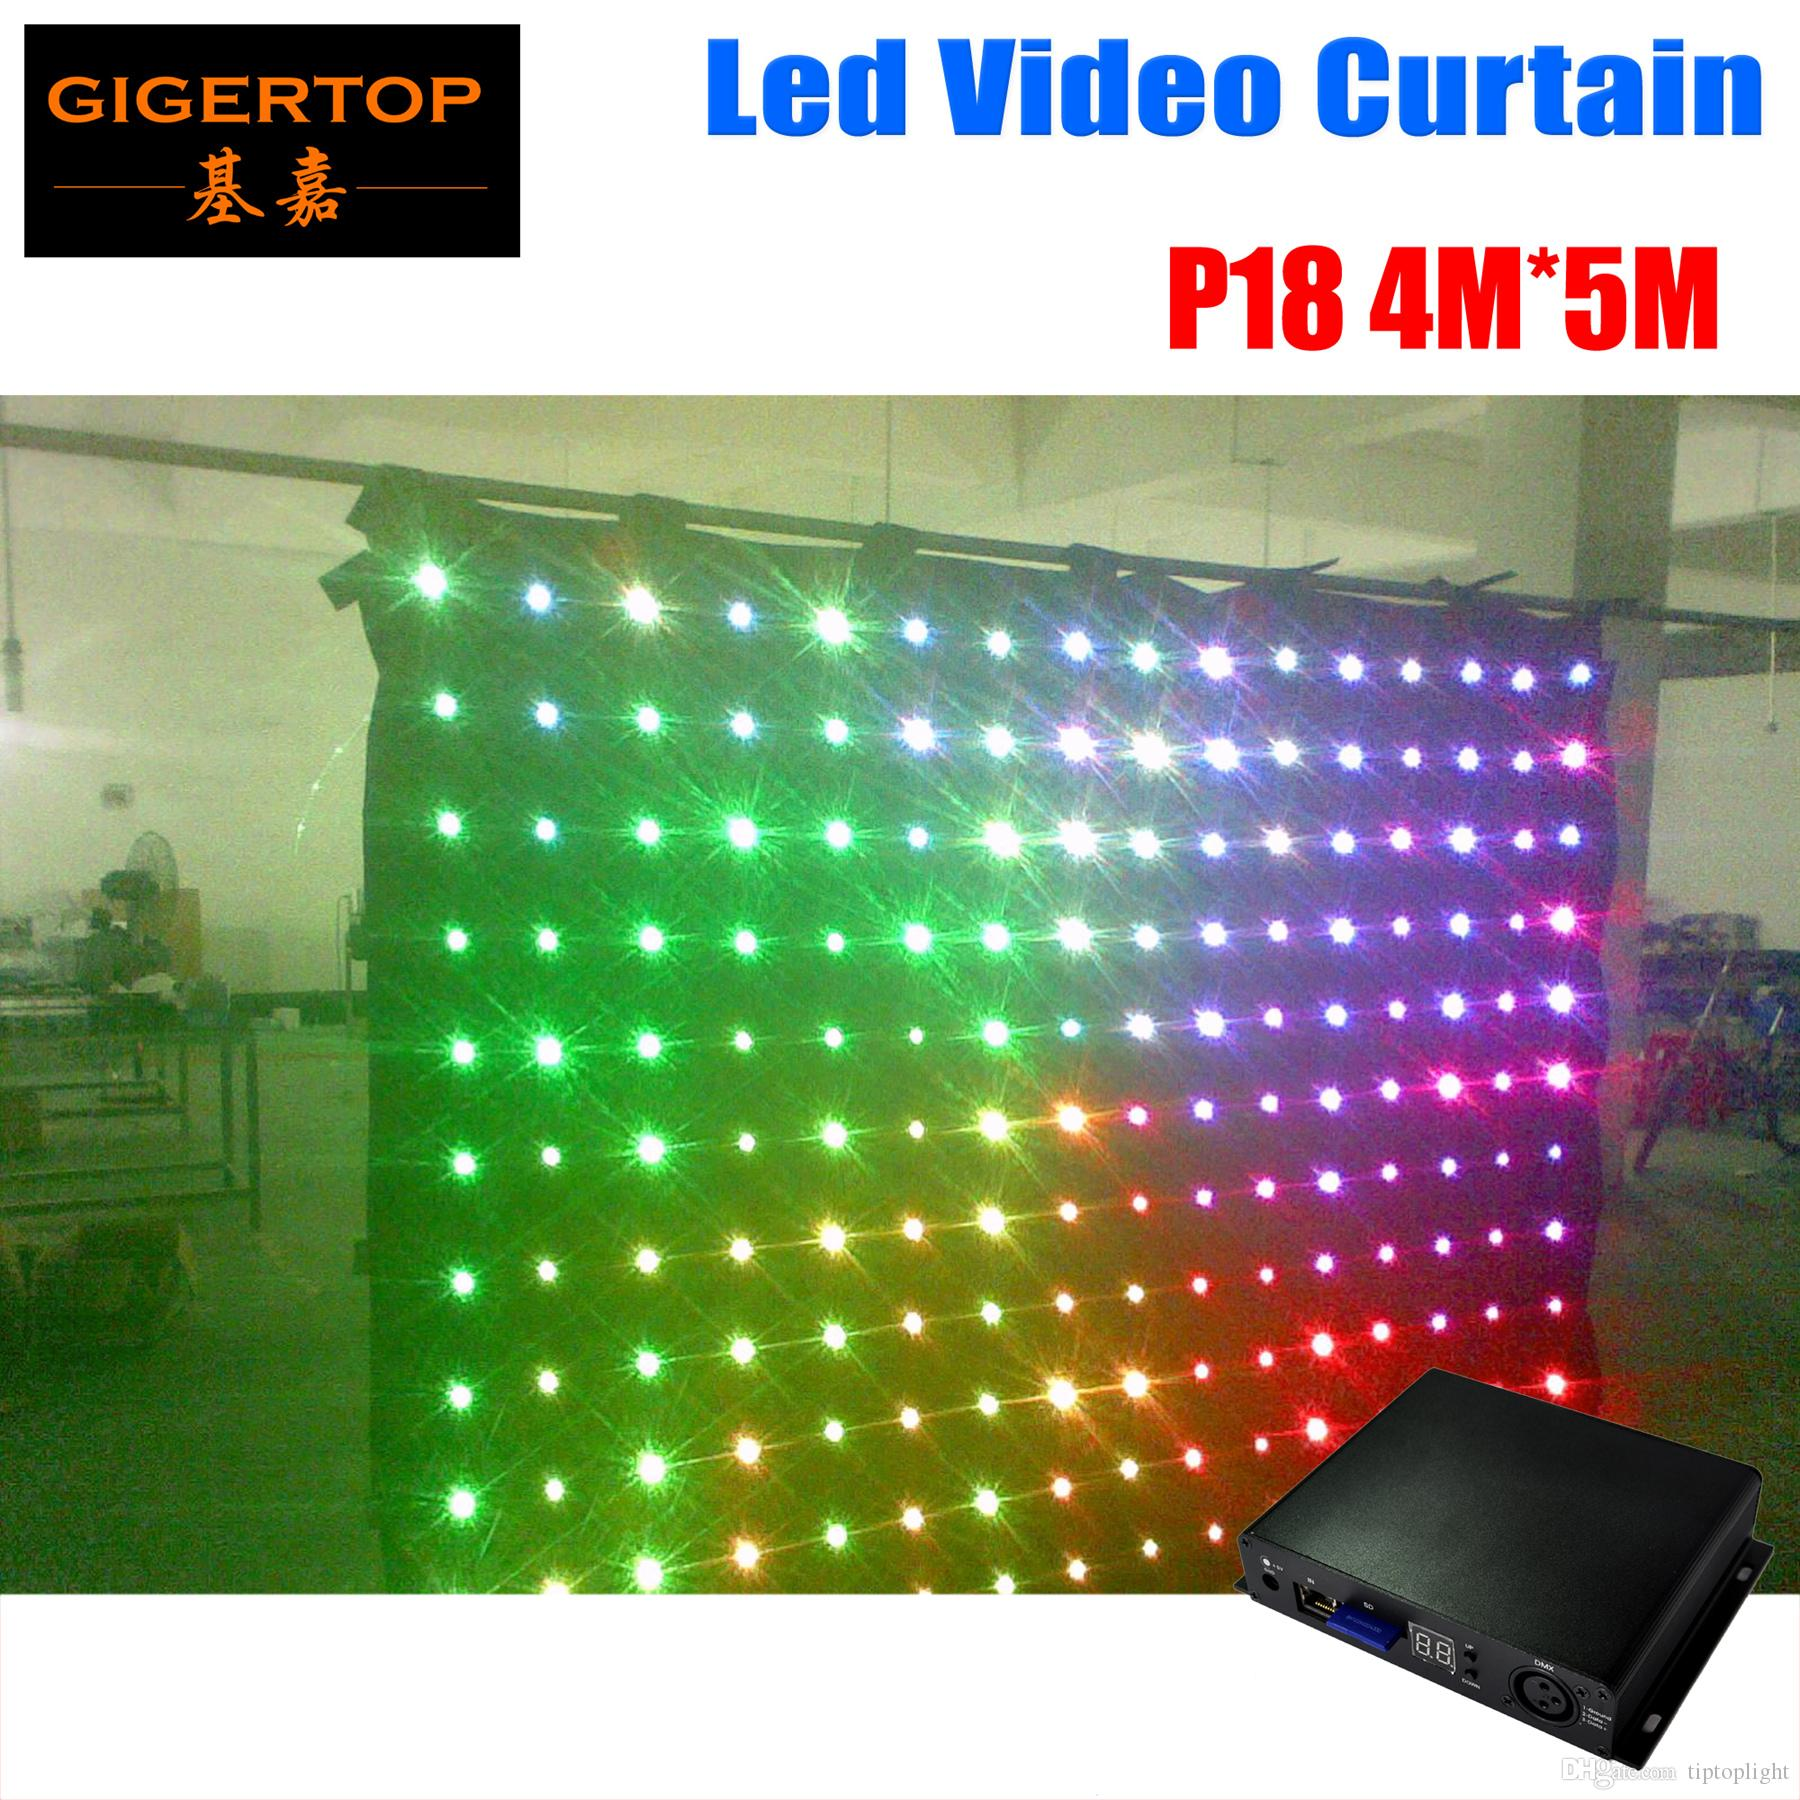 Lights & Lighting Pc Controller Led Soft Curtain Display Led Cortinas Led Video Curtain In Short Supply Free Shipping